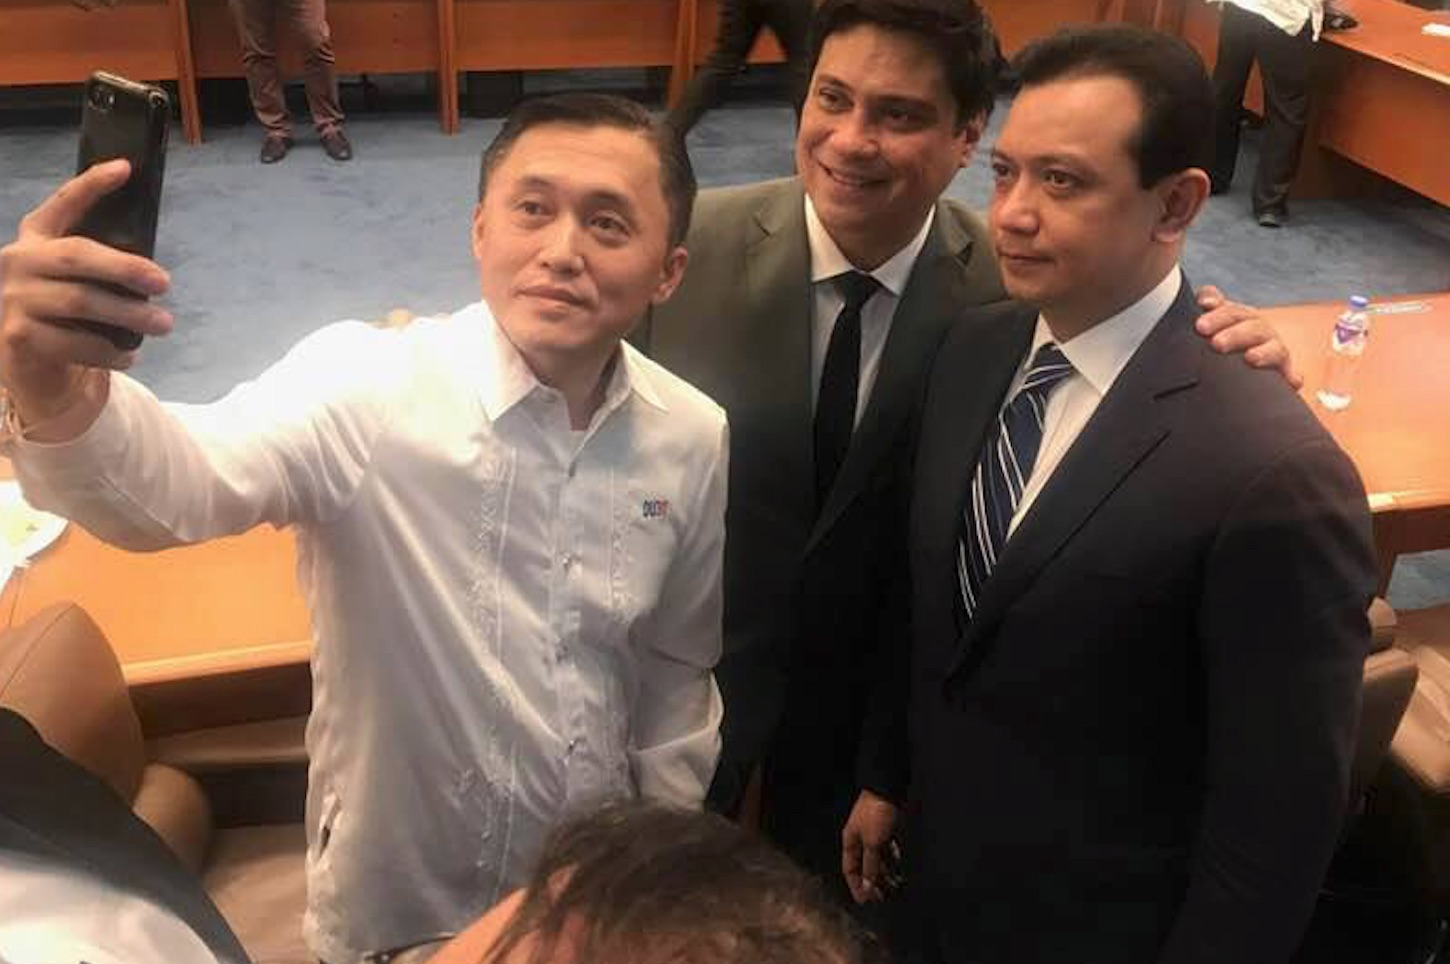 SELFIE. Special Assistant to the President Bong Go takes a selfie with one of his boss' fiercest critics, opposition Senator Antonio Trillanes IV. Photo by Camille Elemia/Rappler